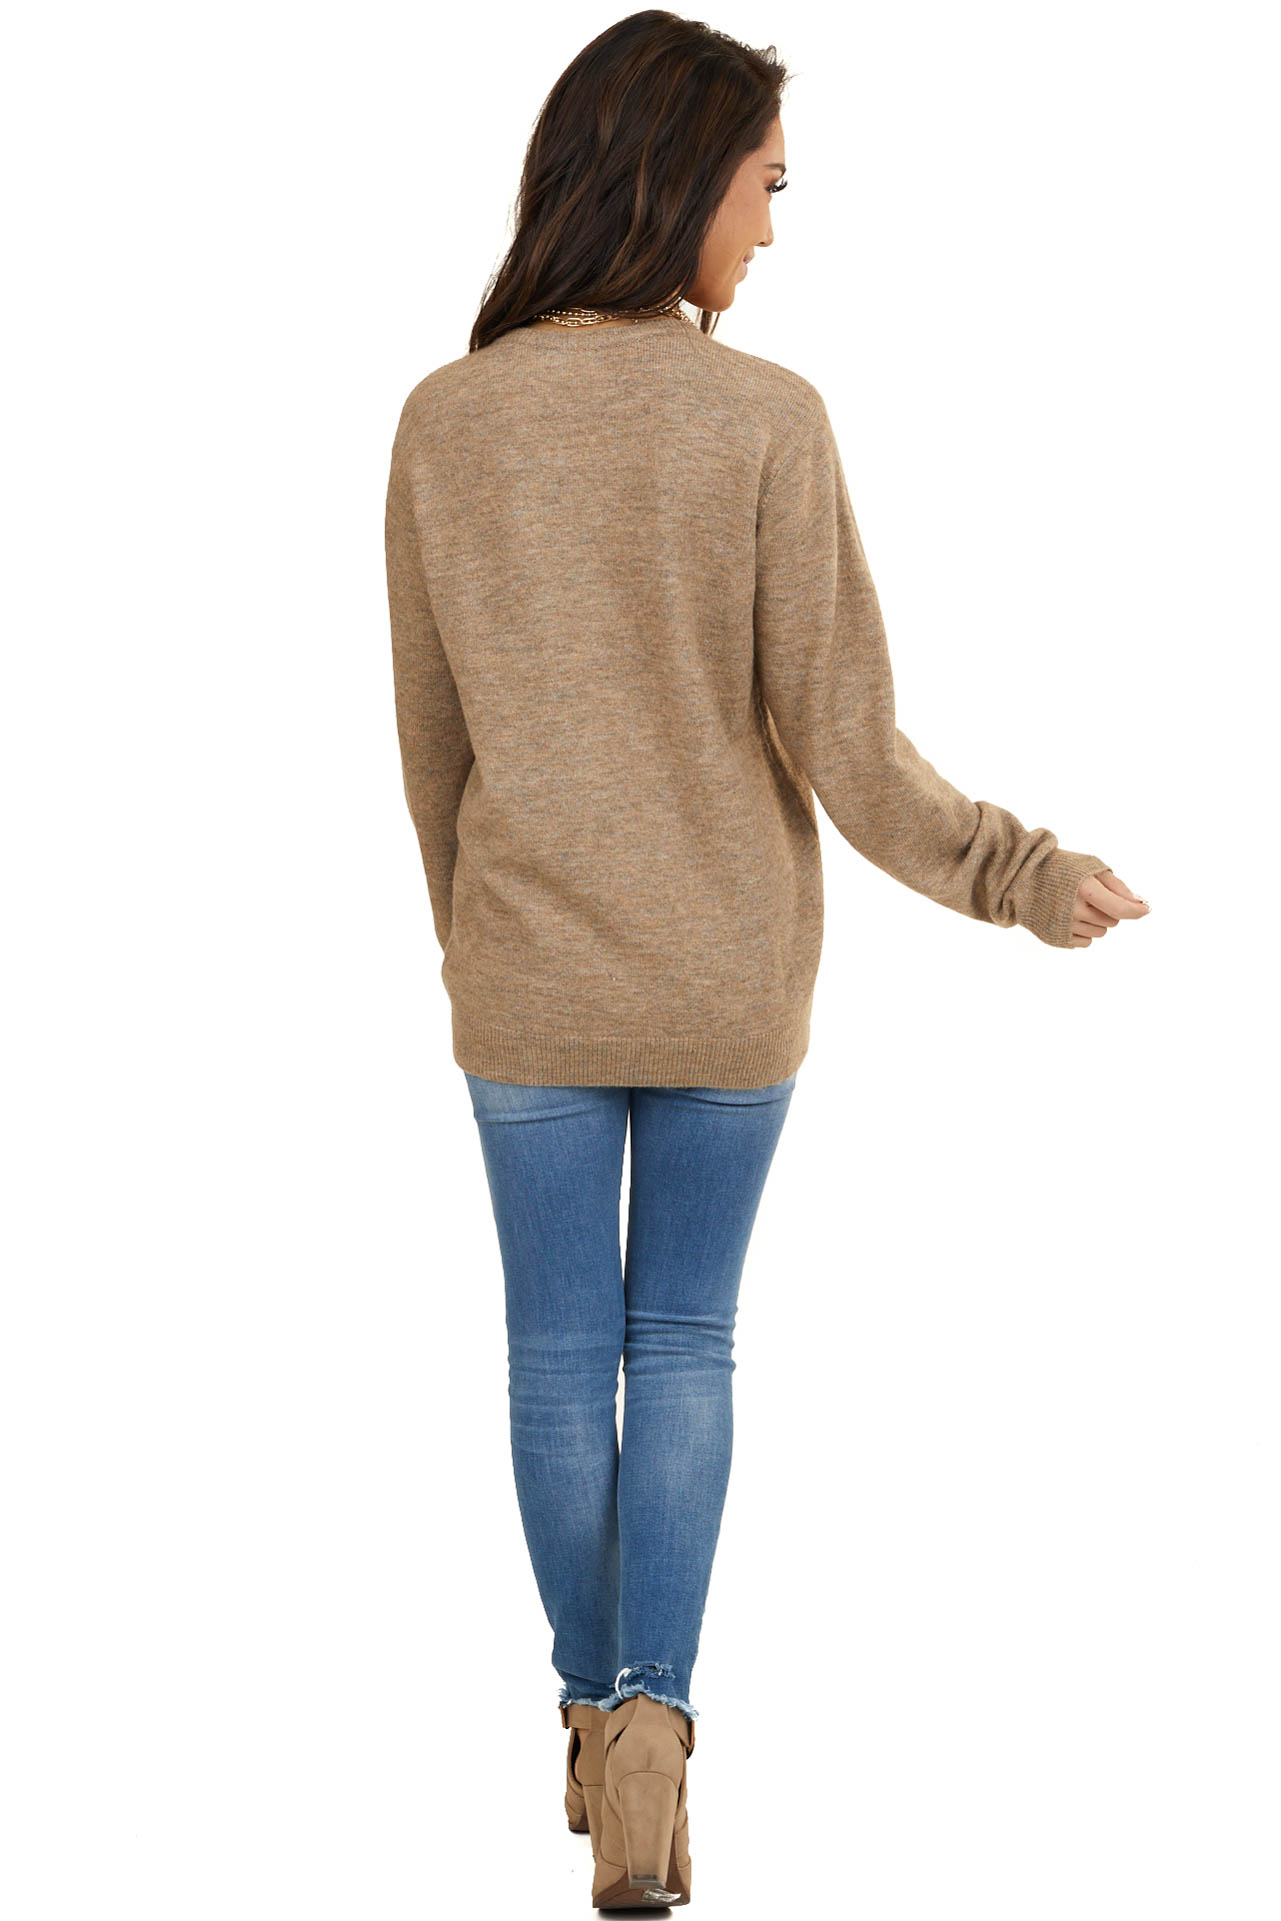 Heathered Taupe Long Sleeve Knit Sweater with Ribbing Detail